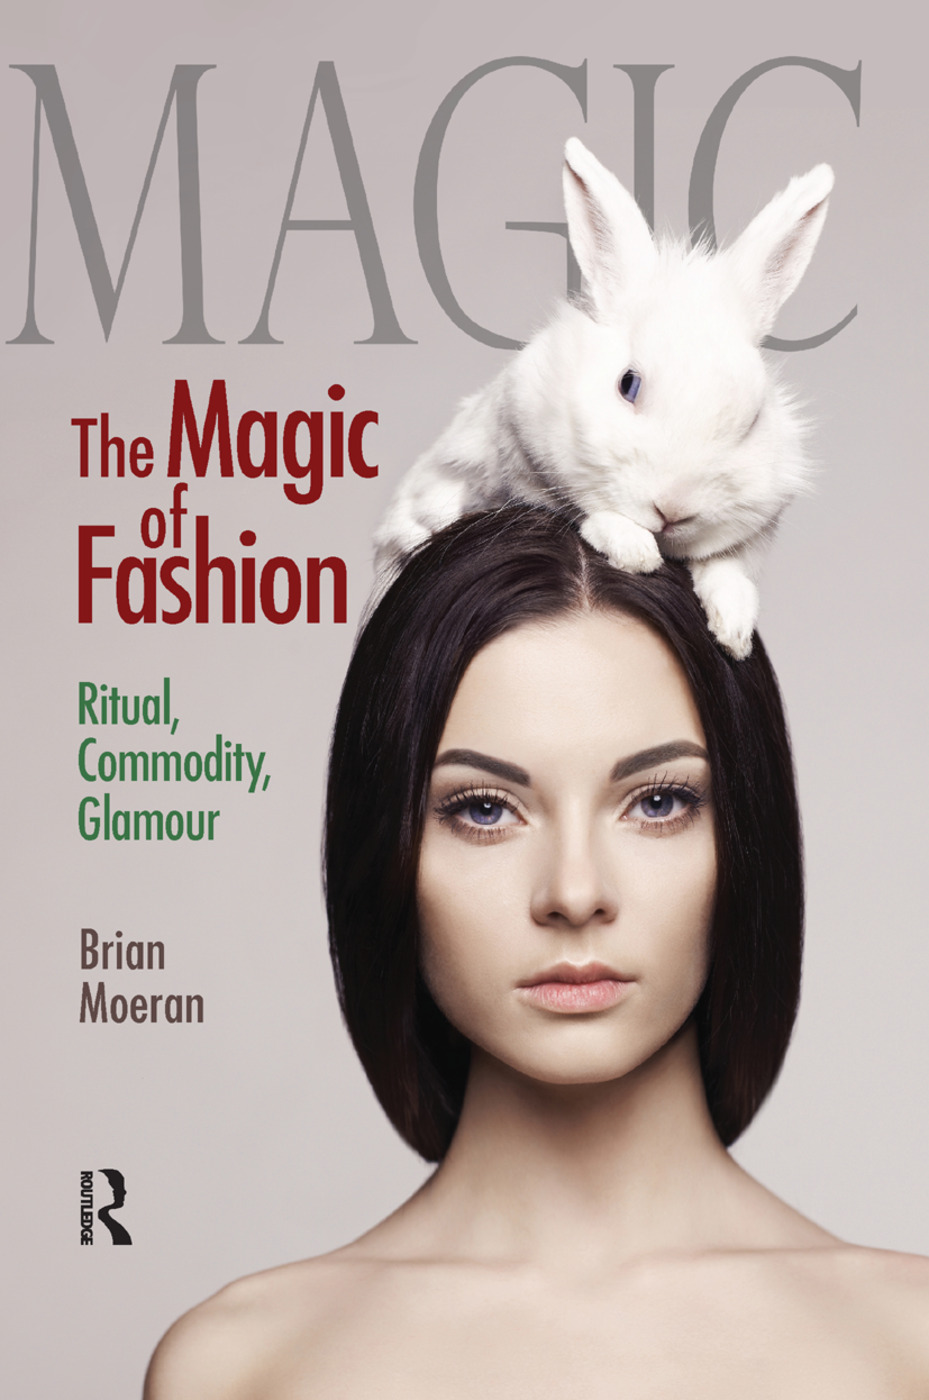 The Magic of Fashion: Ritual, Commodity, Glamour book cover